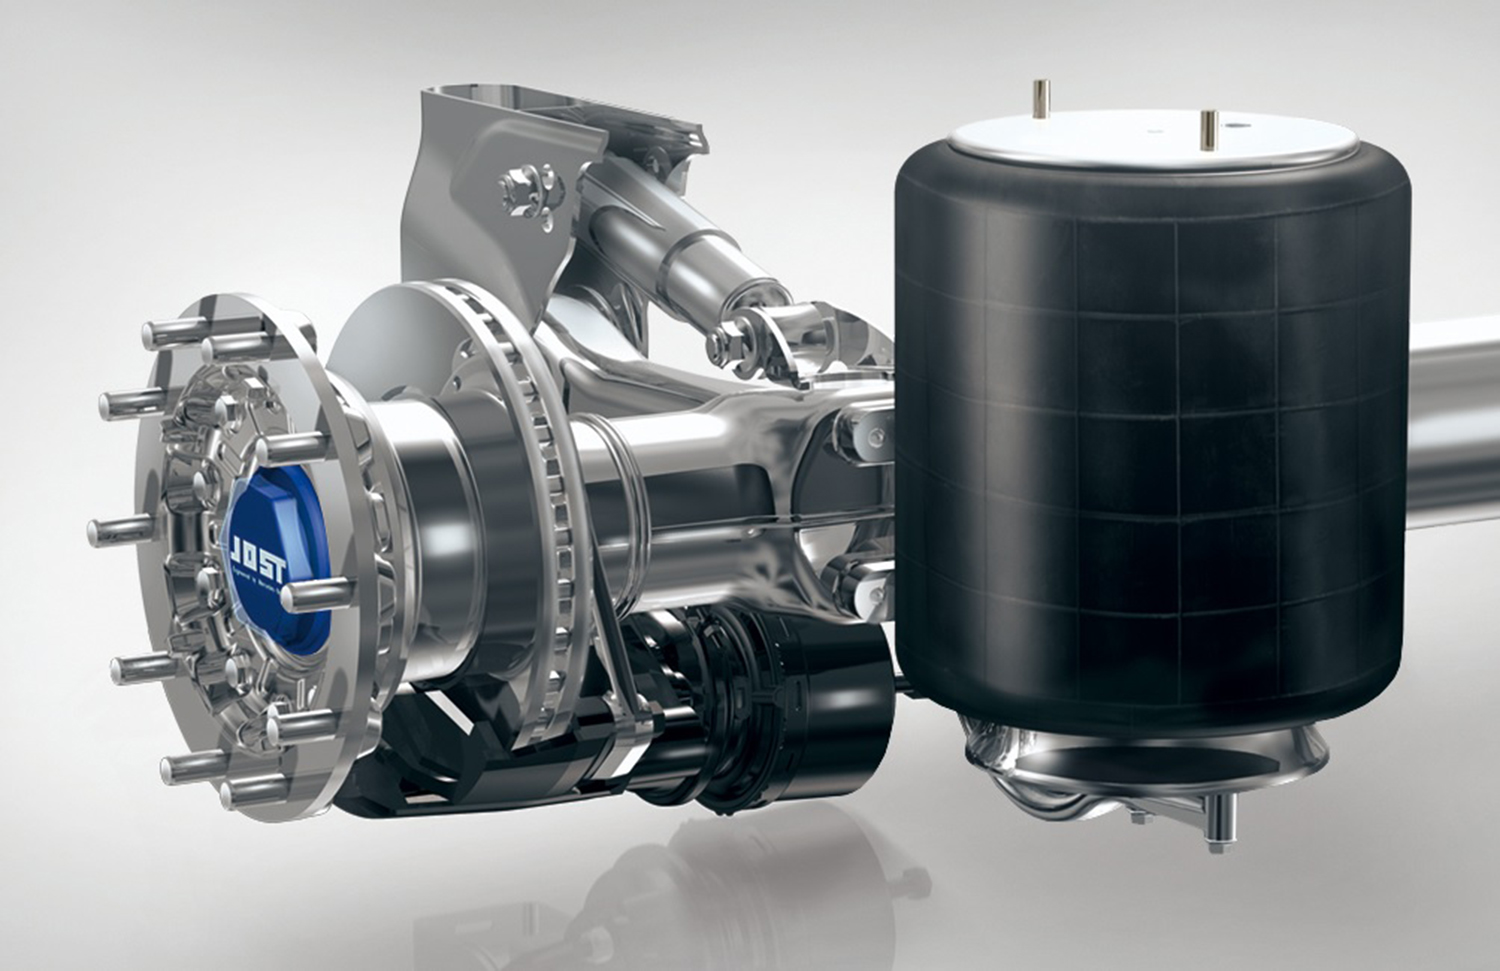 What can we learn from the popularity of disc brakes on tanker trailers?